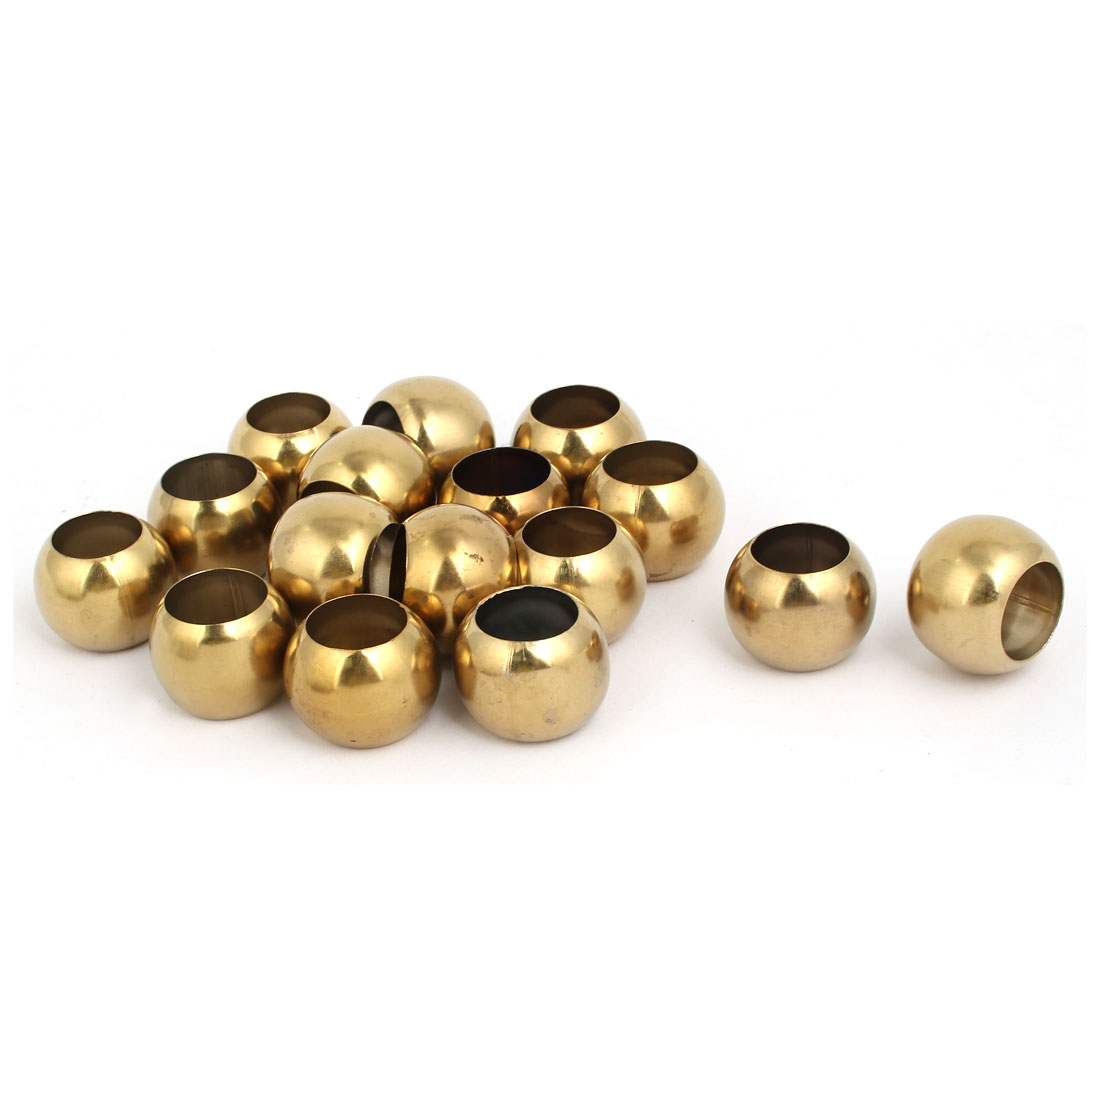 32mmx18.5mm 201 Stainless Steel Hollow Ball Gold Tone 16pcs for Handrail Stair